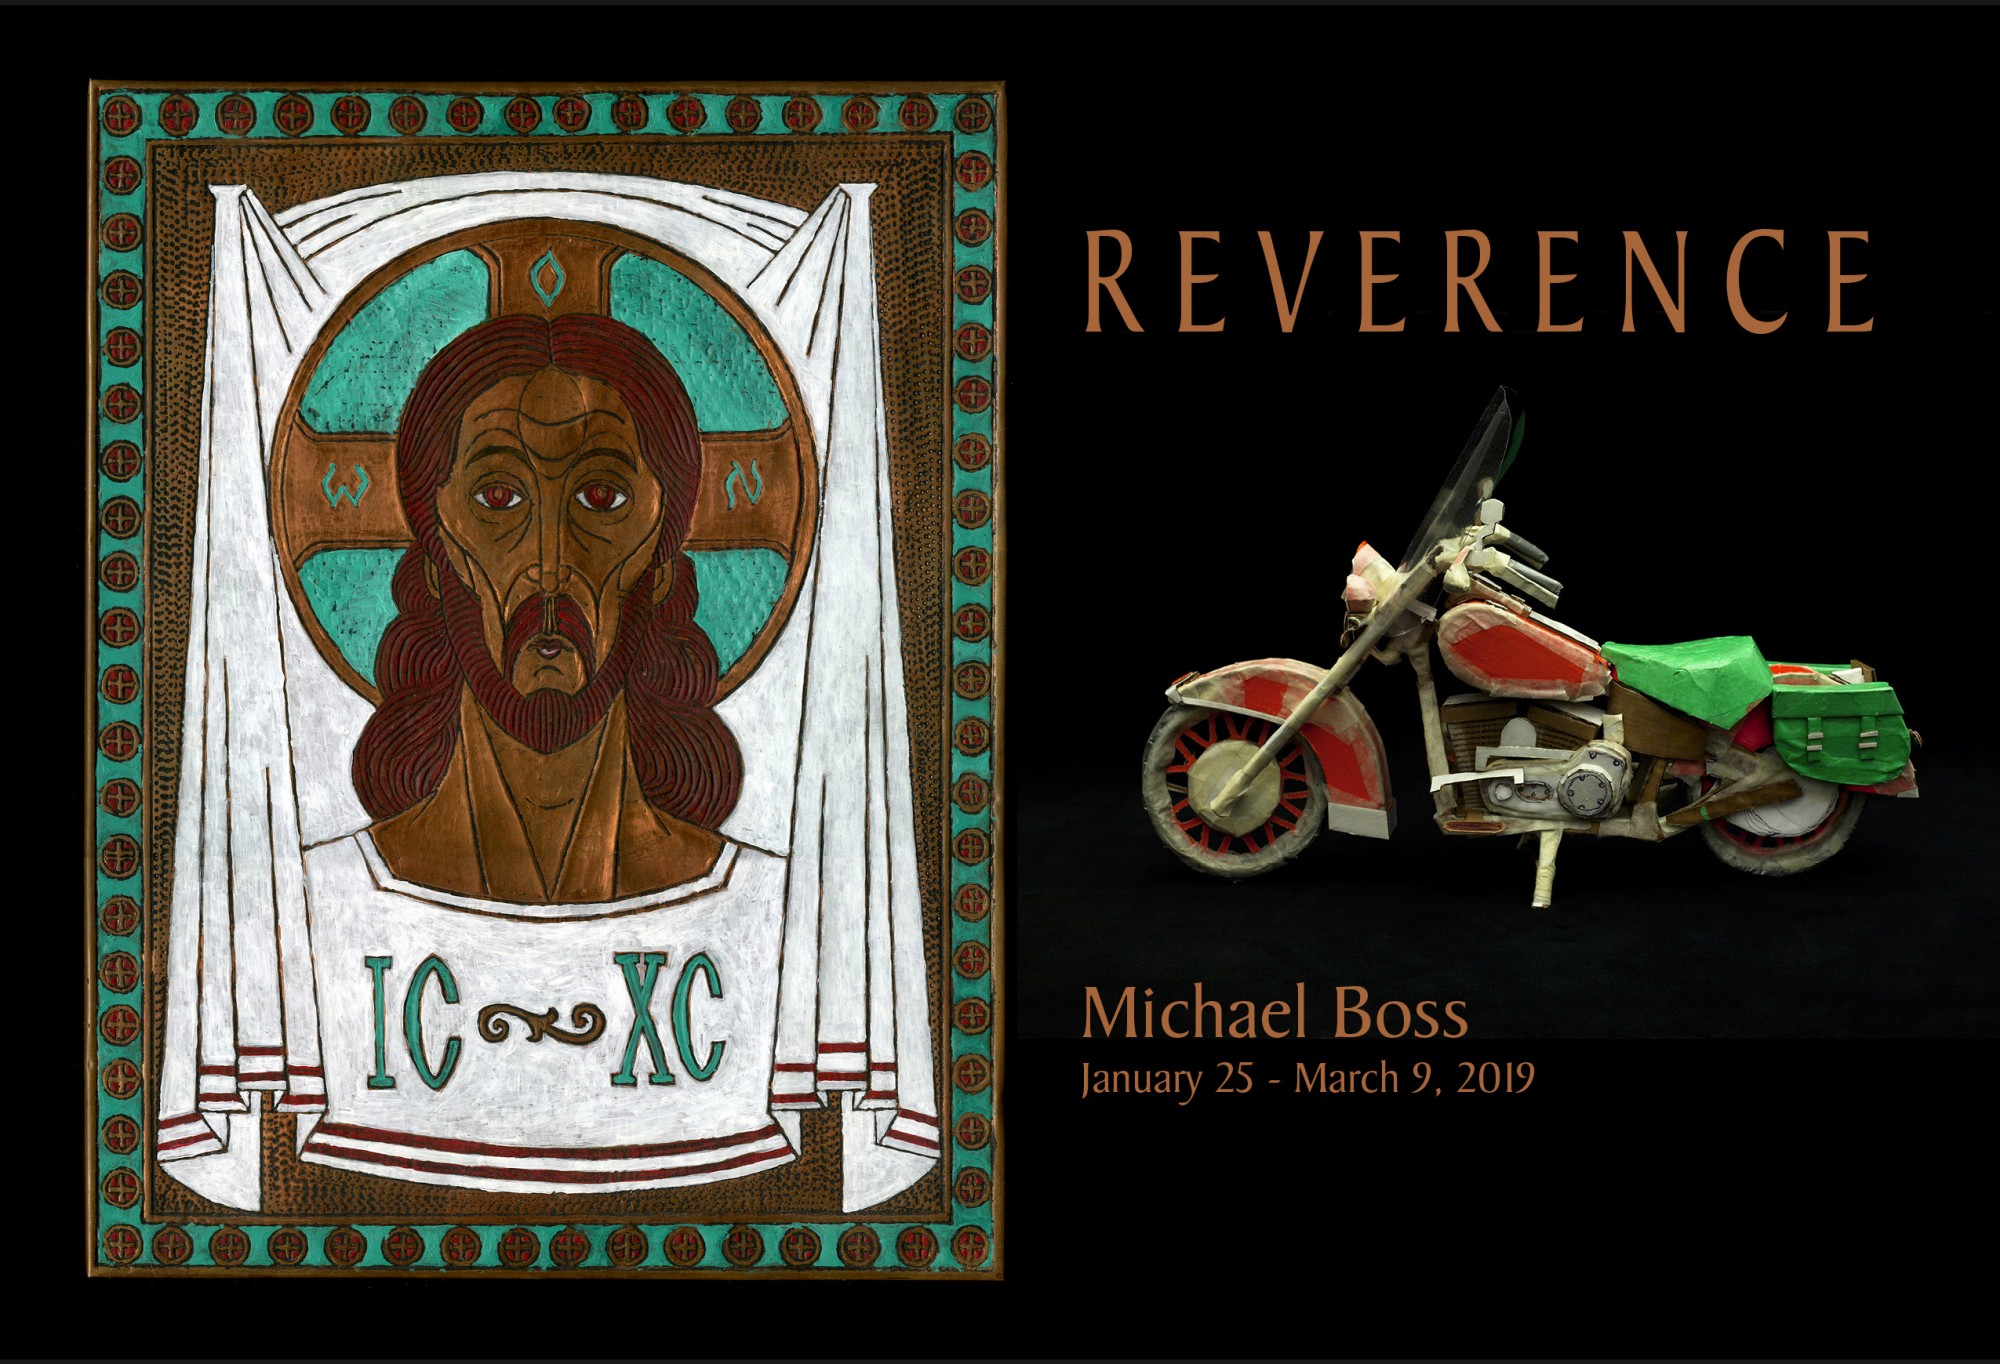 REVERENCE by Michael Boss